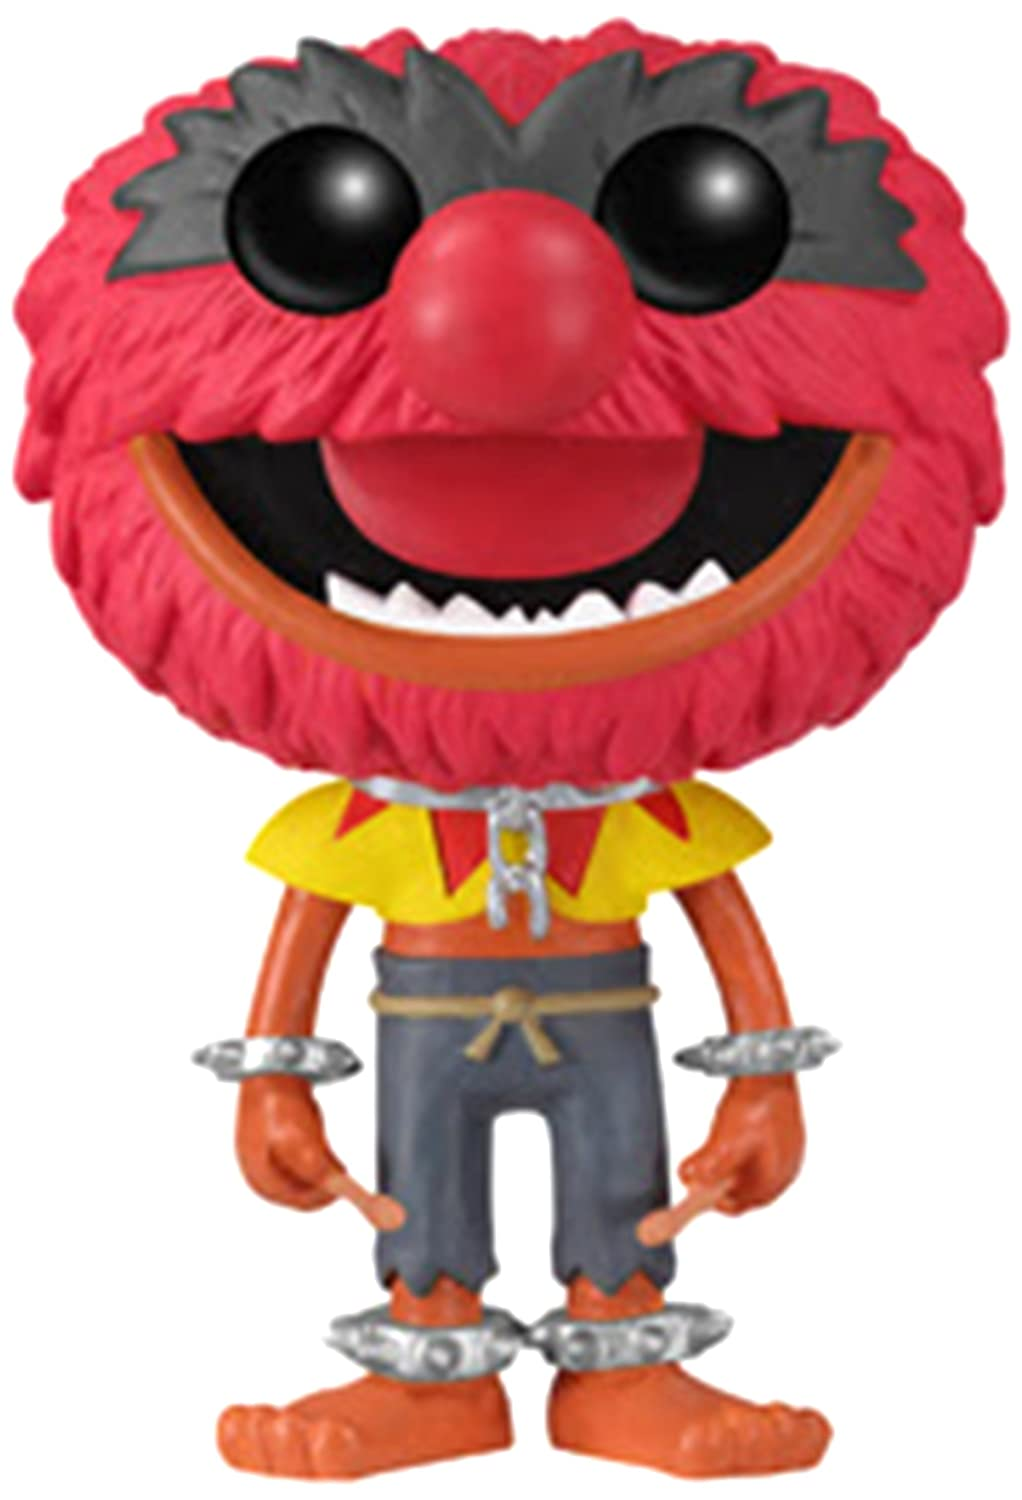 Funko POP Most Wanted Animal Action Figure Muppets